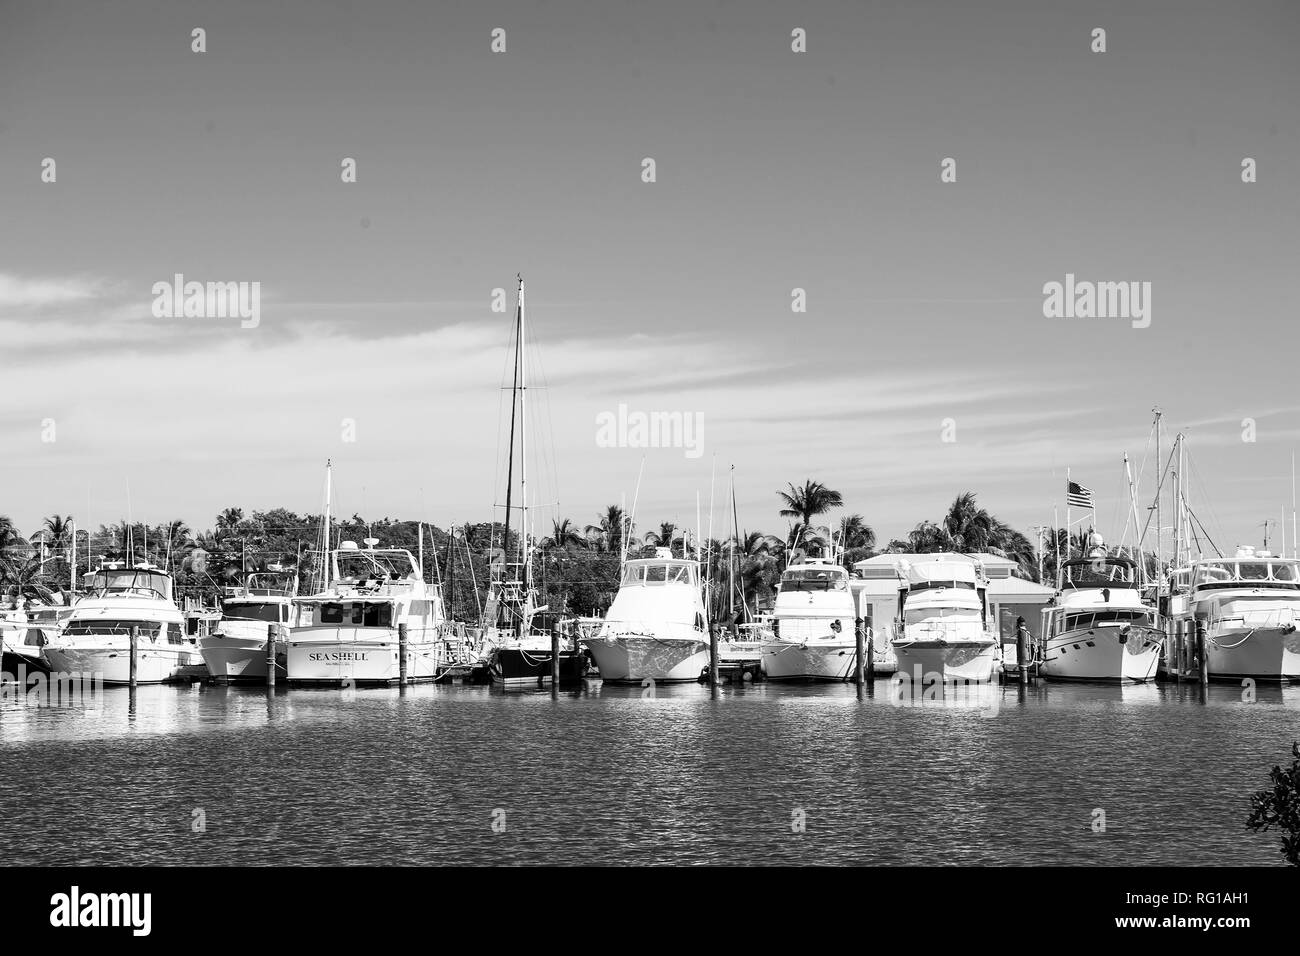 Key west, usa - February 08, 2016: yachts and sailing ships moored at sea pier on sunny blue sky. Yachting and sailing concept. Summer vacation on tropical island. Water transport and marine vessels. - Stock Image